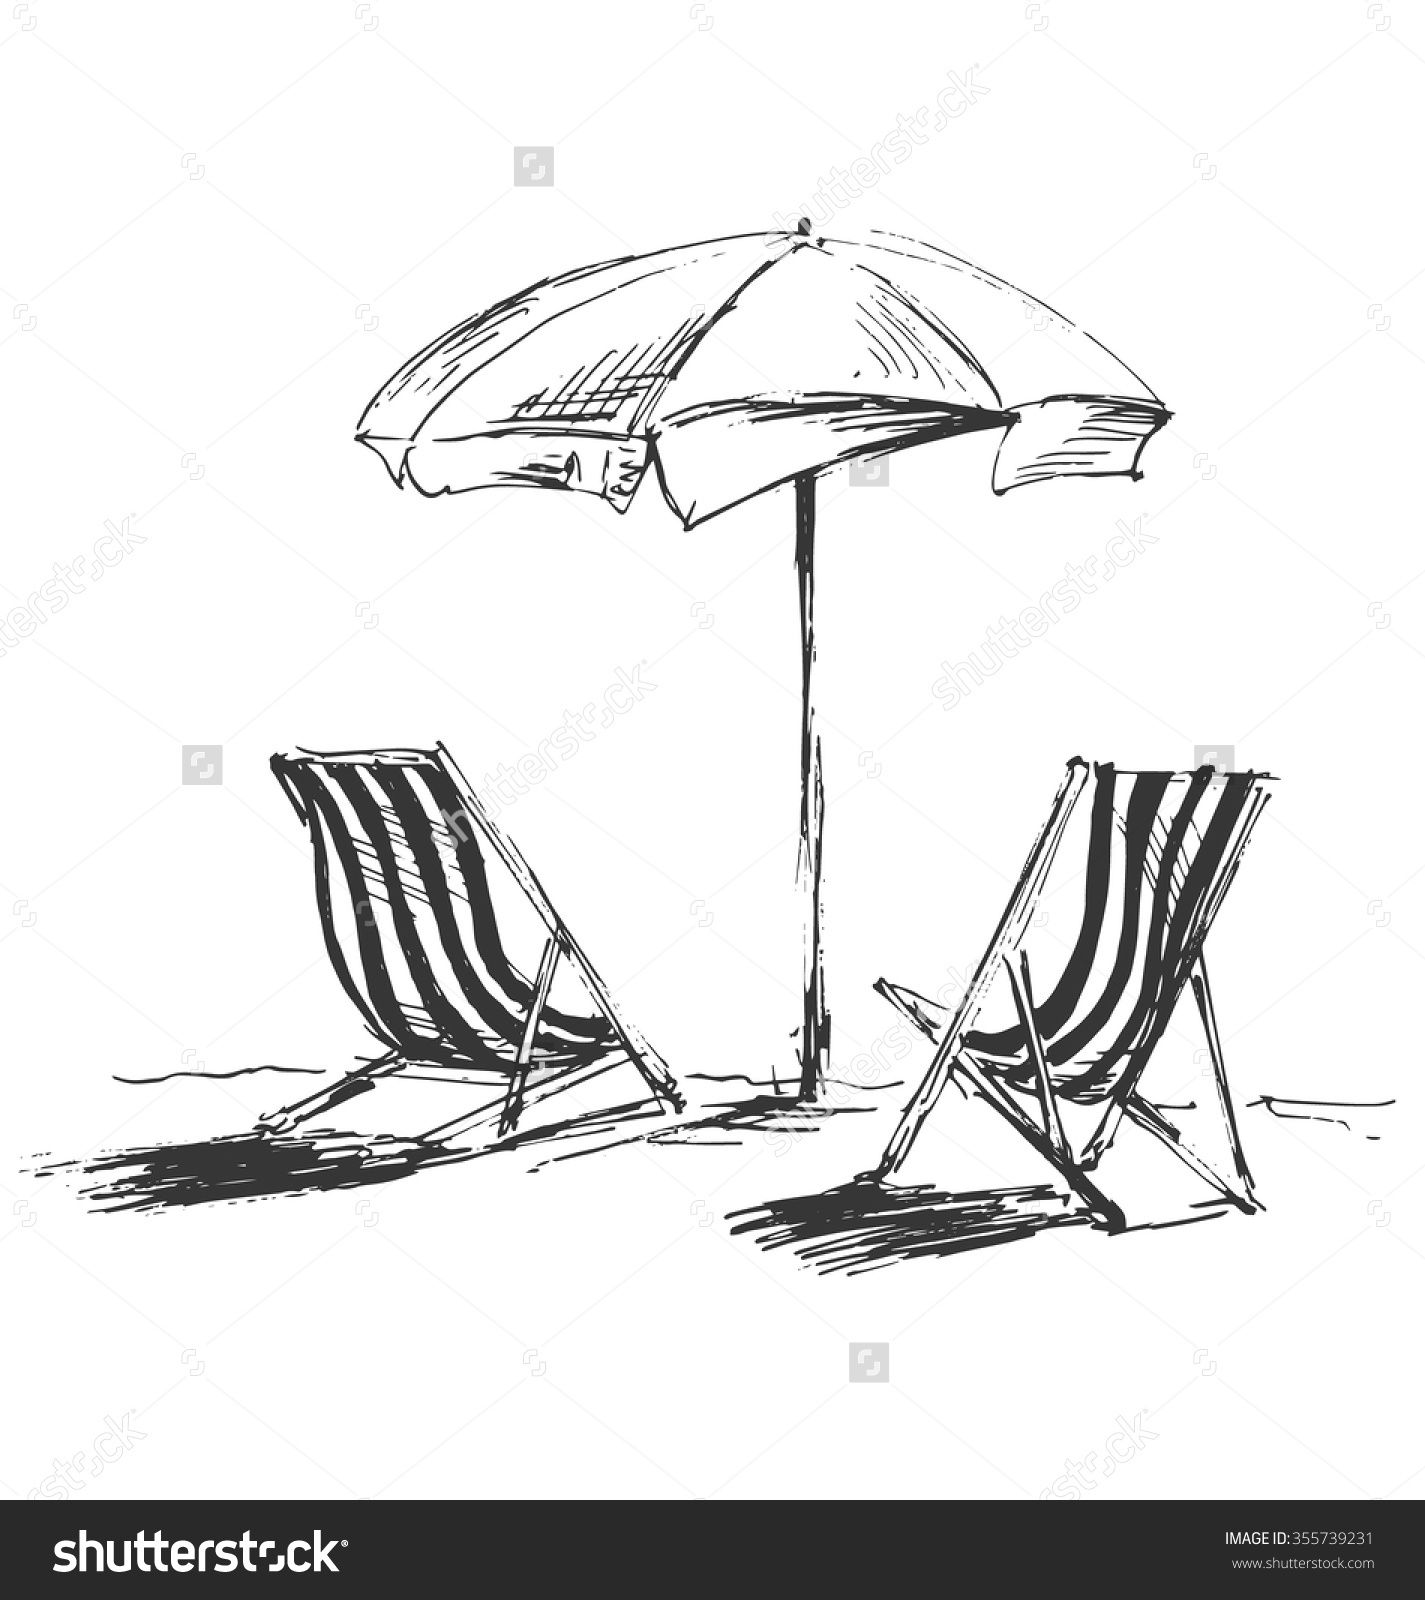 hand sketch with beach chairs and parasols art pinterest hand